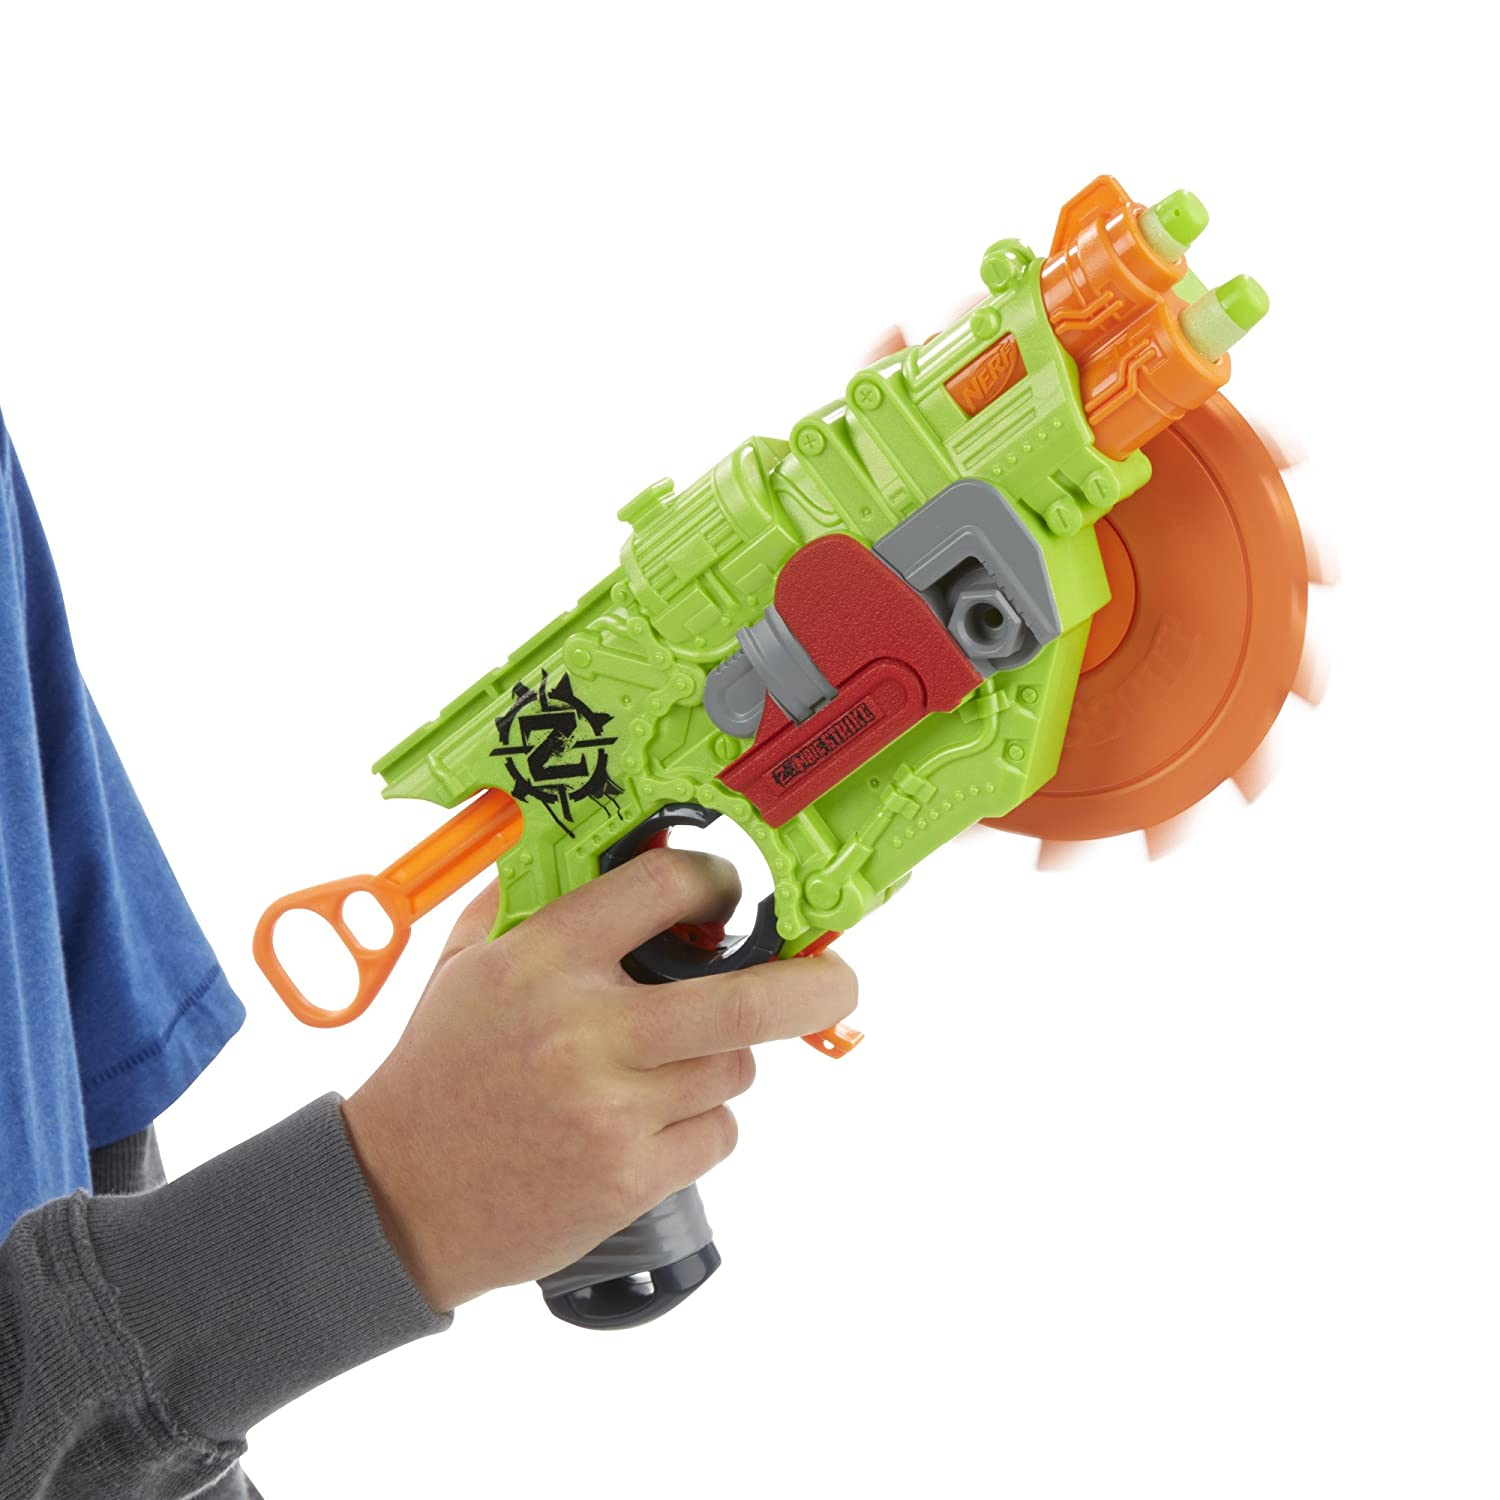 Hasbro launched its Nerf Zombie Strike line a few years ago, offering zombie-themed  Nerf weapons like shotguns, revolvers, crossbows, and chainsaws.